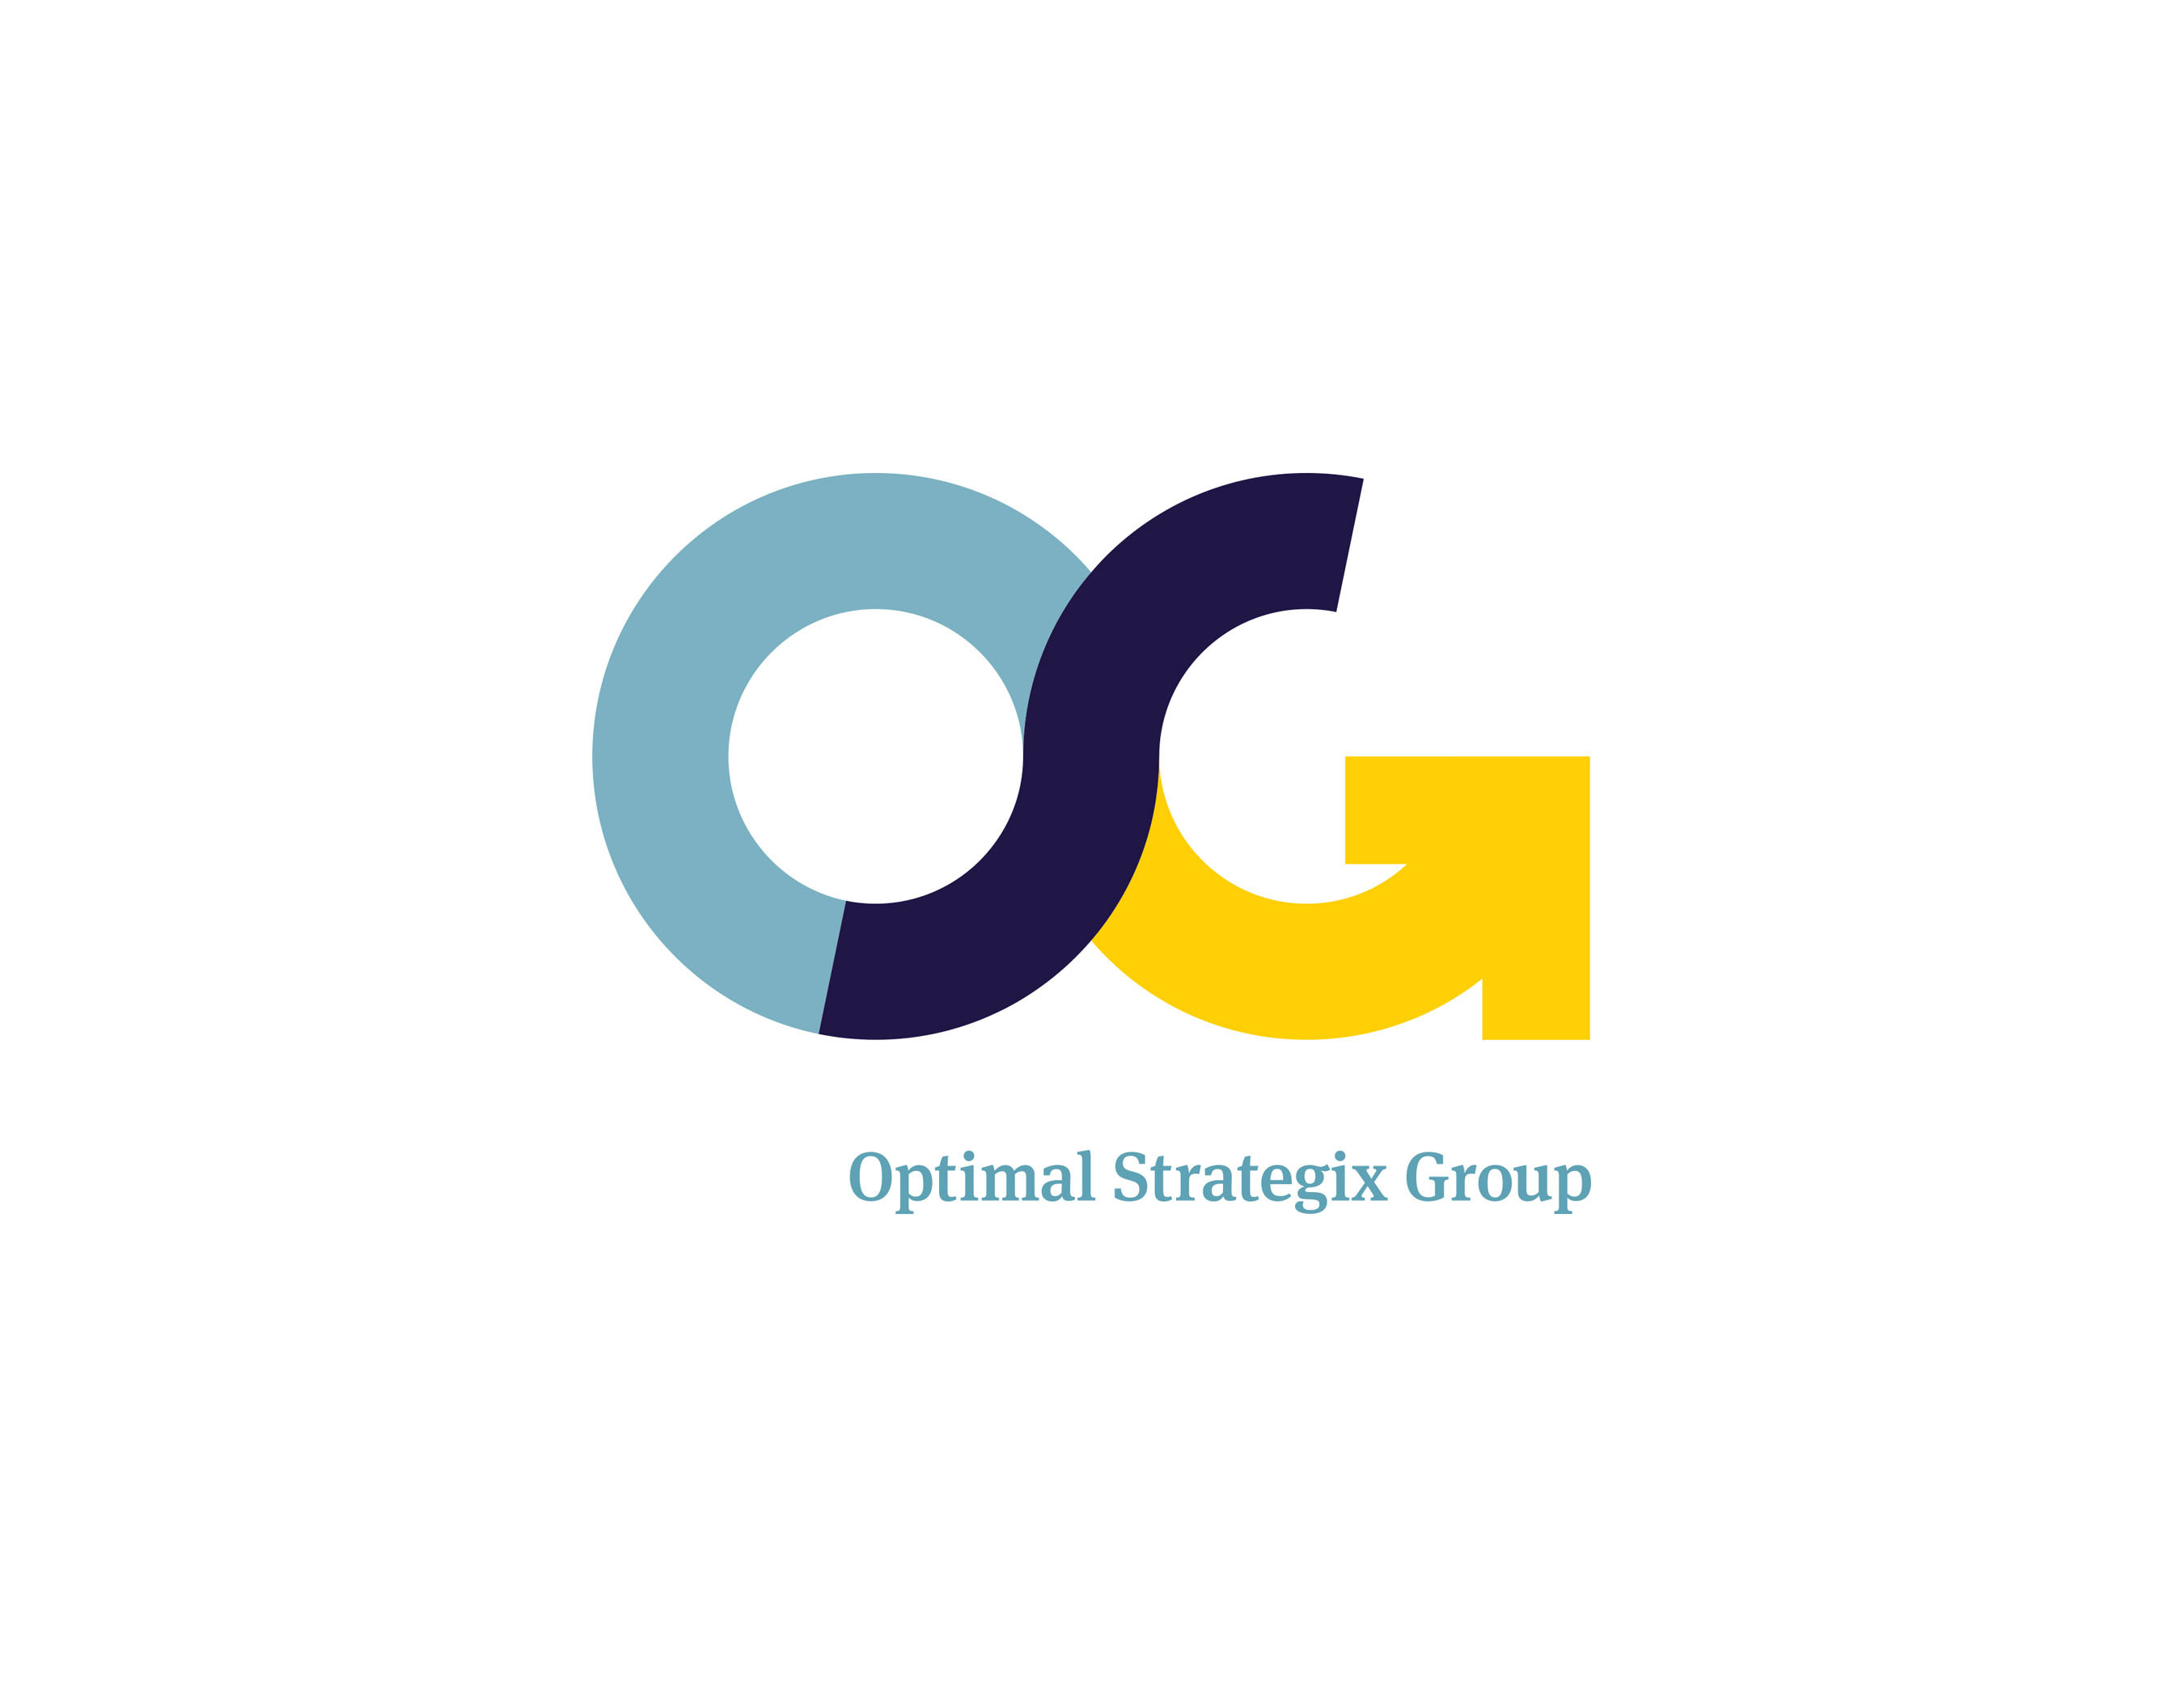 osg company About osg we are a leading provider of energy transportation services our vision is to be the most respected energy transportation company in the jones act trade.